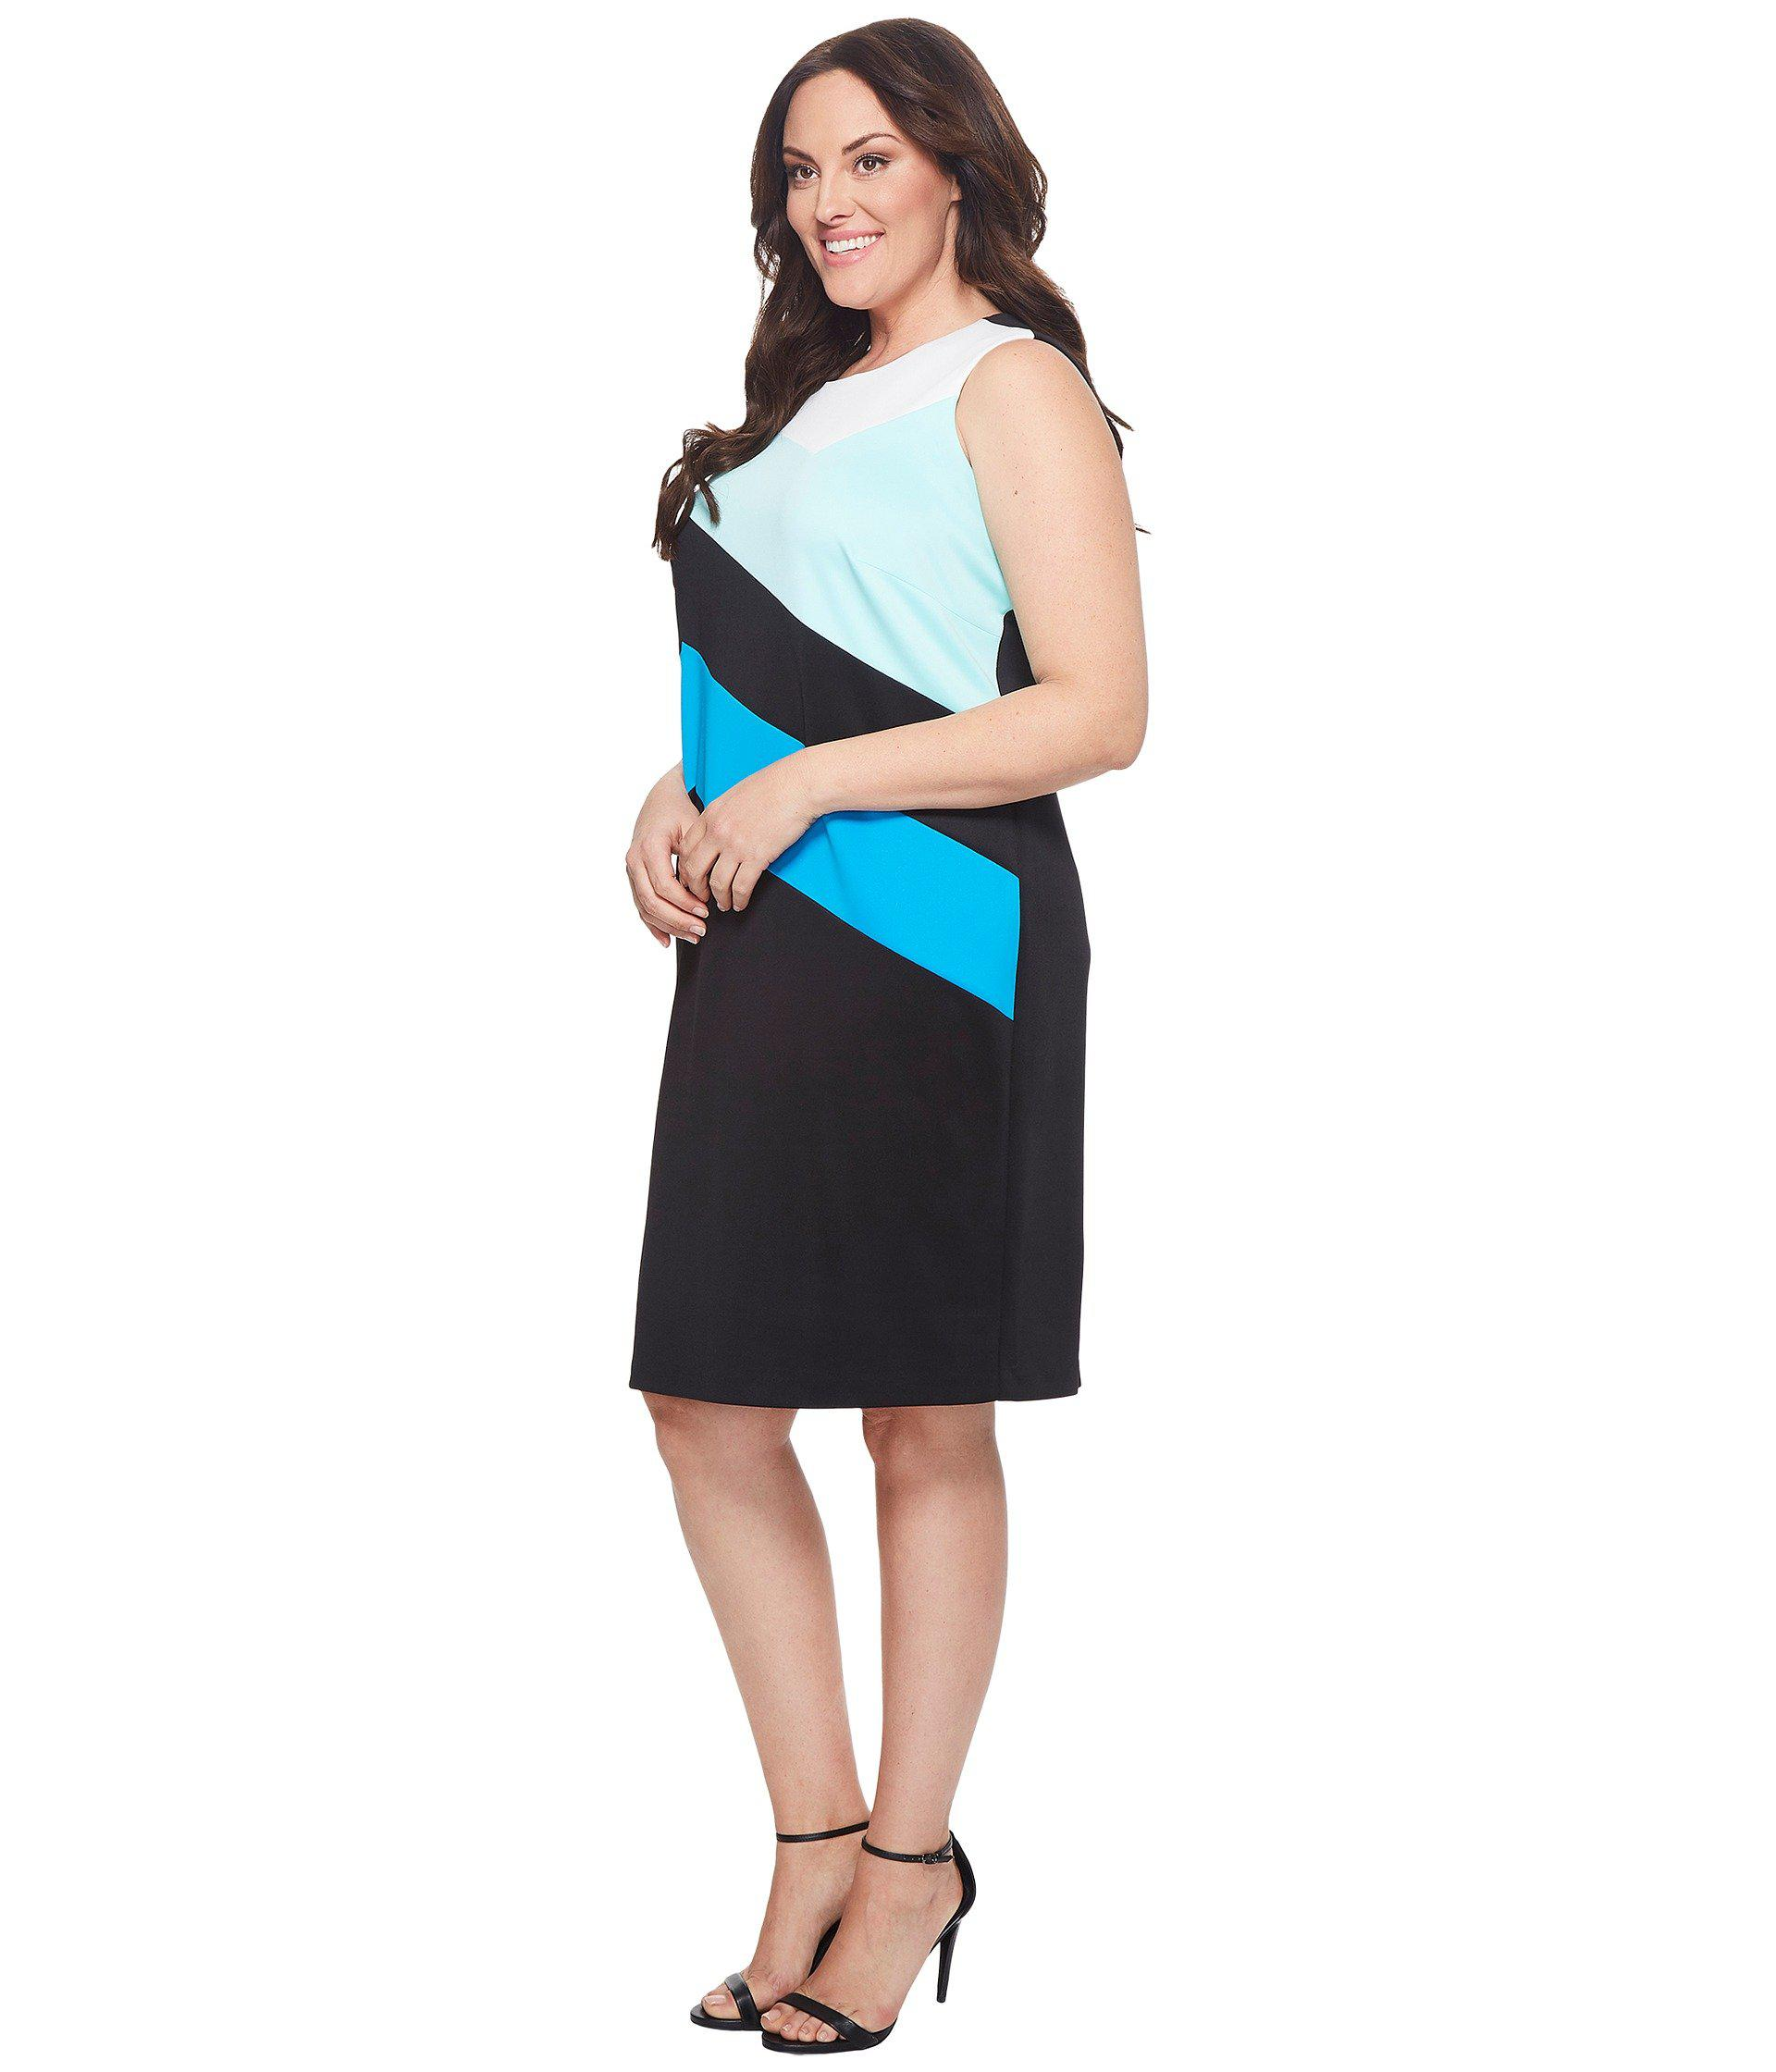 643d8342bcd Lyst - Calvin Klein Plus Size Color Block Sheath Dress in Black - Save  43.29896907216495%